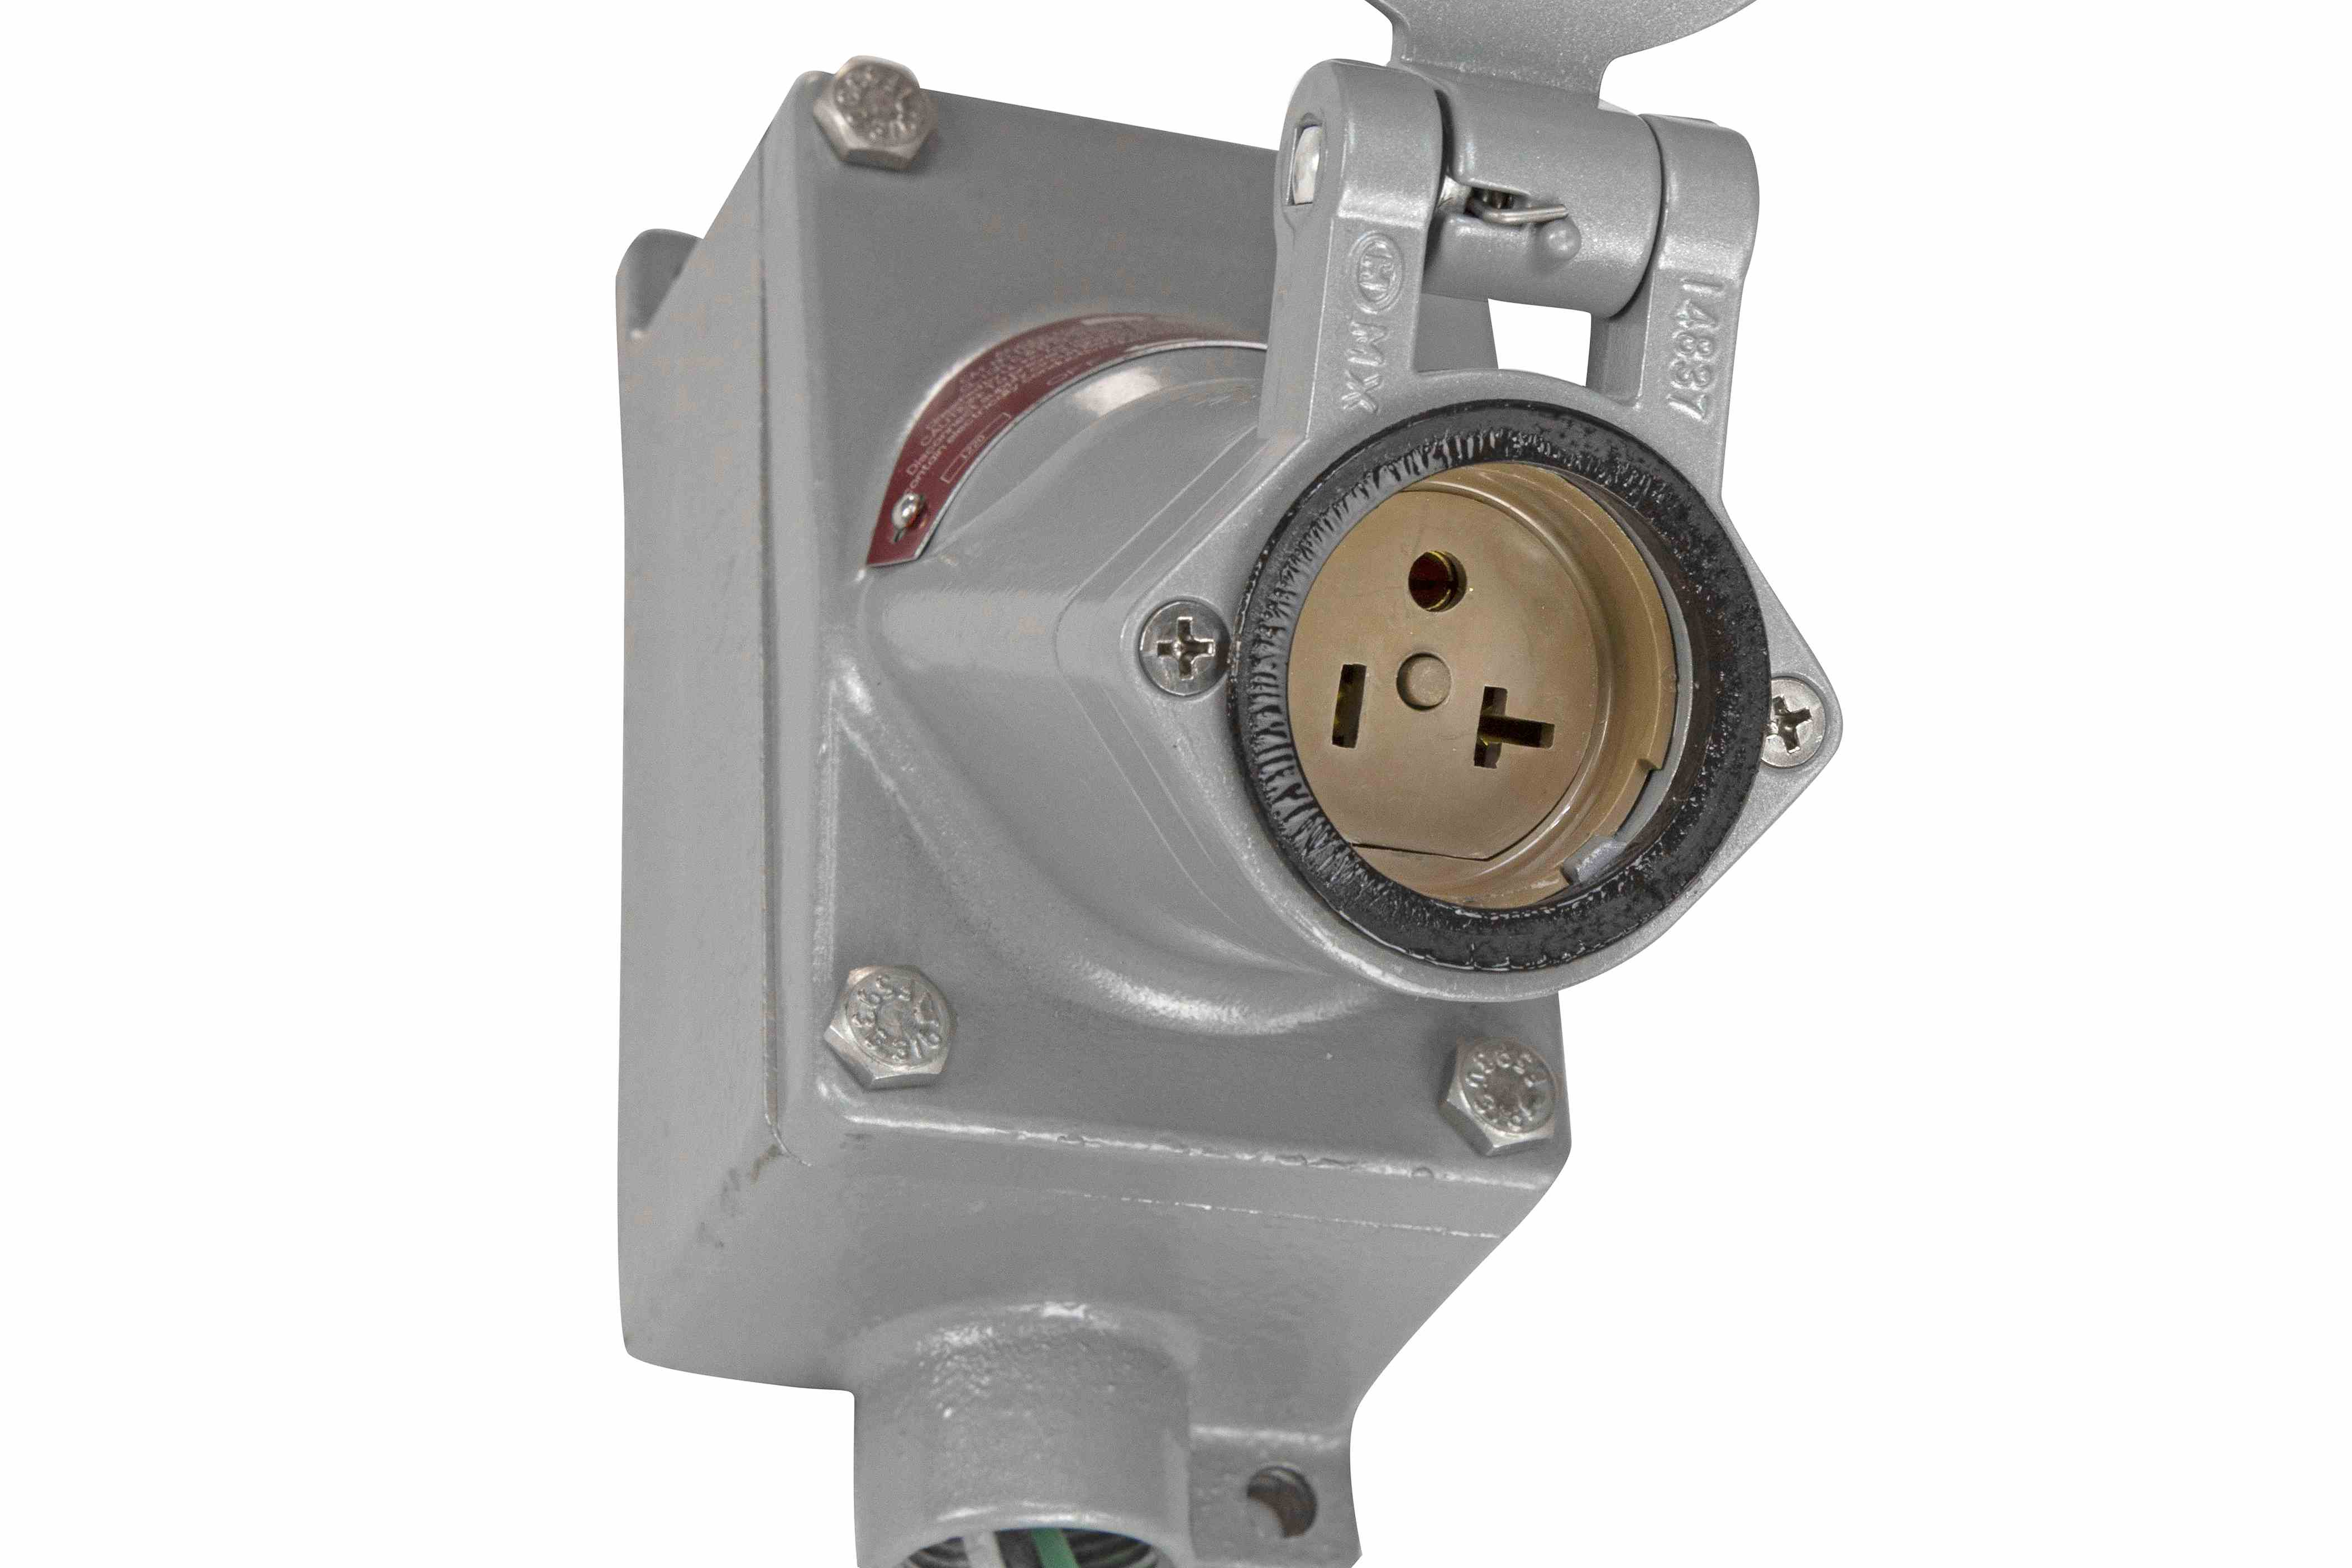 Explosion Proof Outlet 20 Amp Rated Larson Electronics Plug Not A Socket Feeding The Boat Ac System Hi Res Image 2